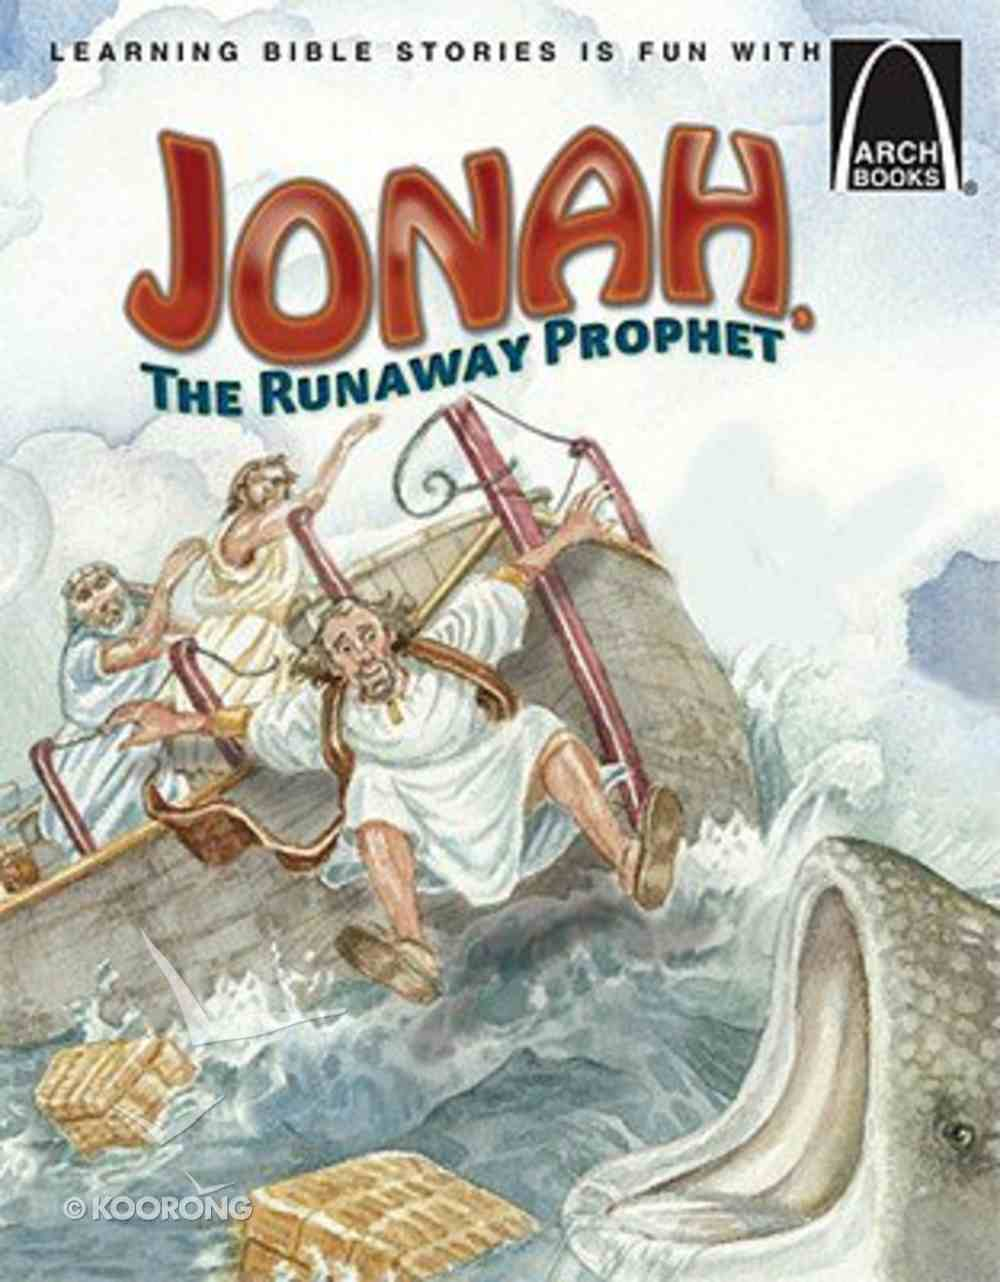 Jonah, the Runaway Prophet (Arch Books Series) Paperback